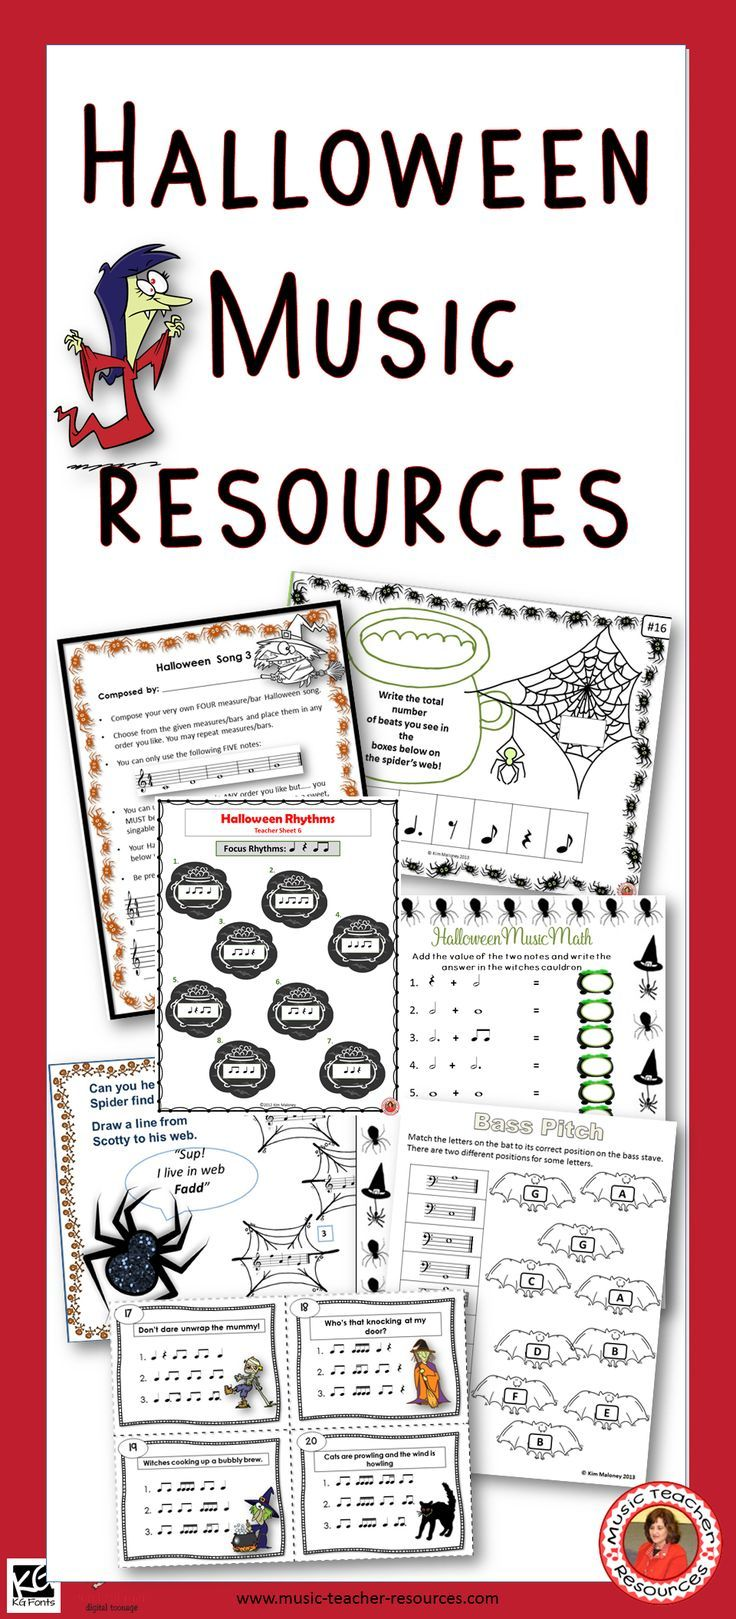 Music Worksheets And Activities For Halloween In The Music